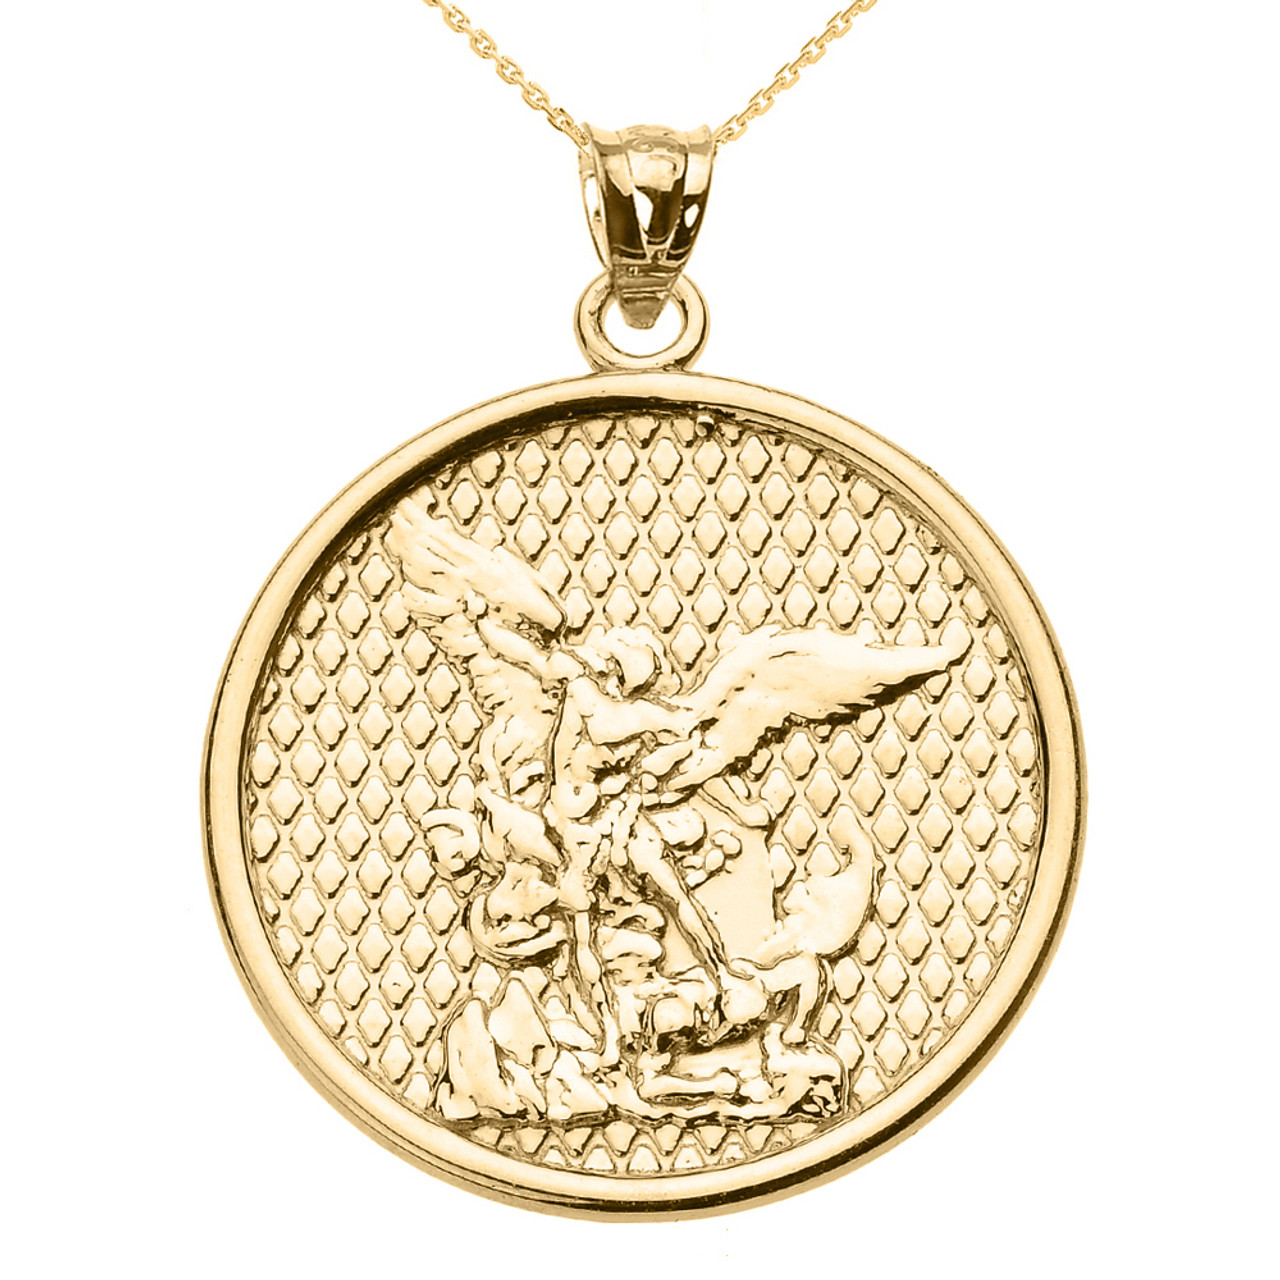 Gold saint michael pendant necklace yellow gold saint michael pendant necklace mozeypictures Image collections